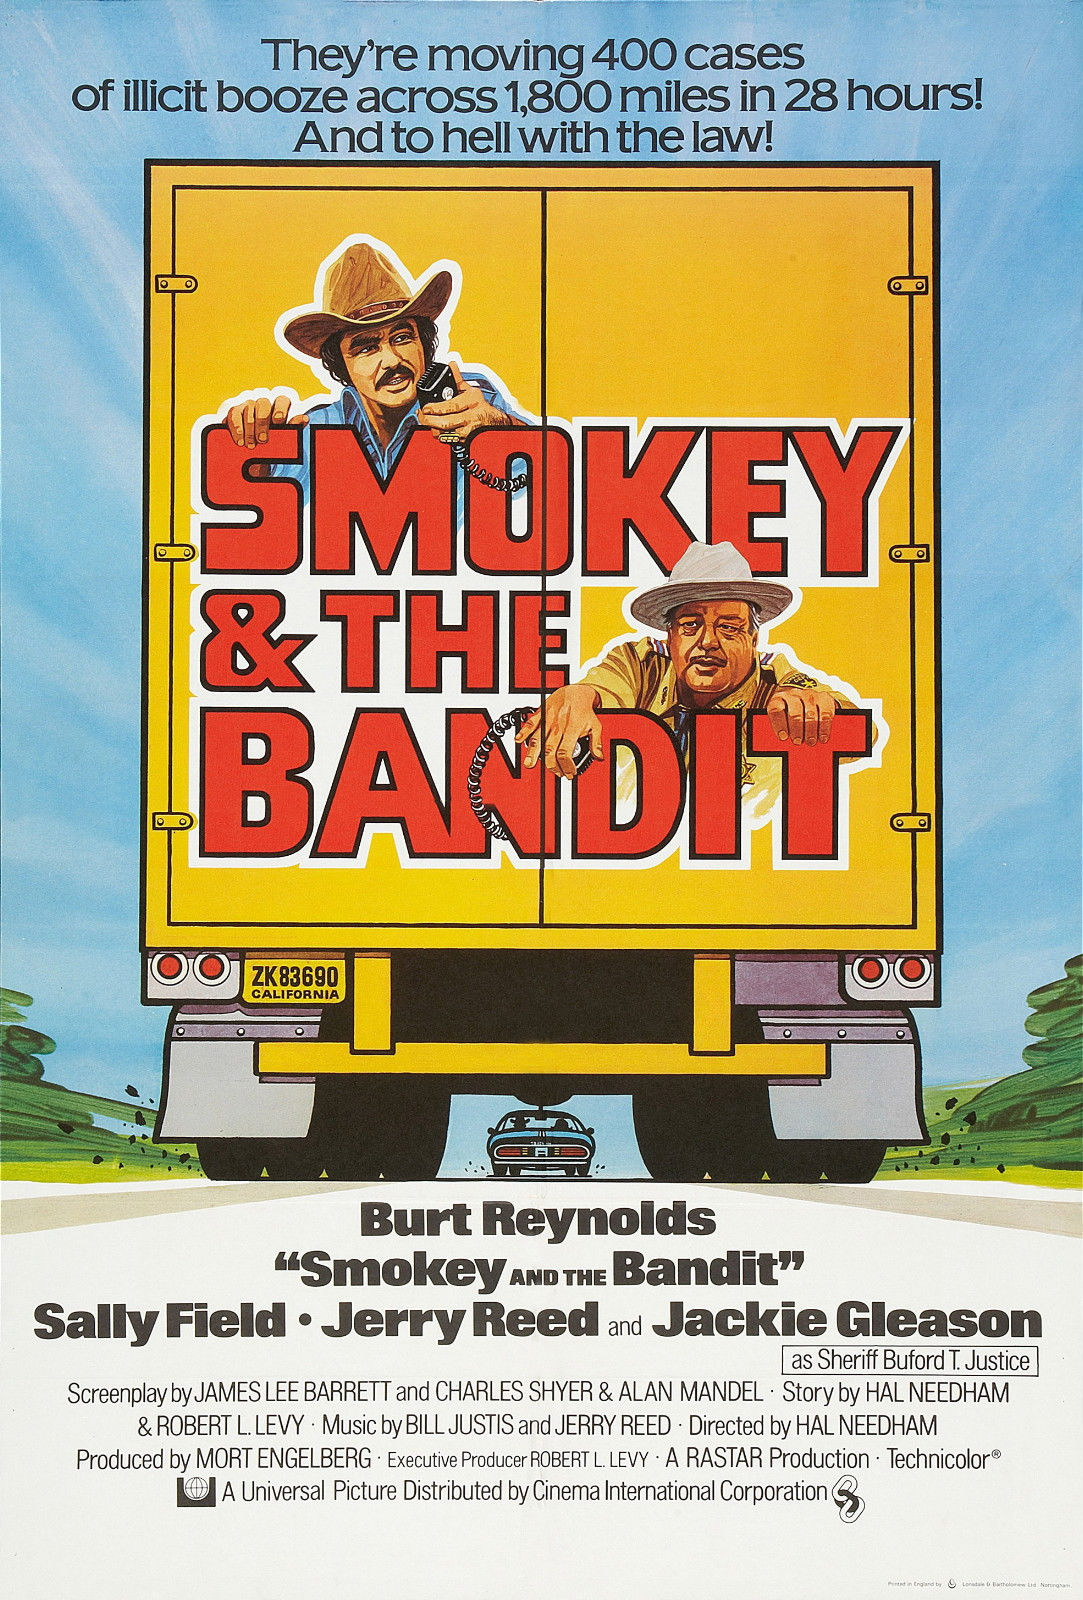 72452 SMOKEY AND THE BANDIT Movie 70's Wall Print Poster Affiche